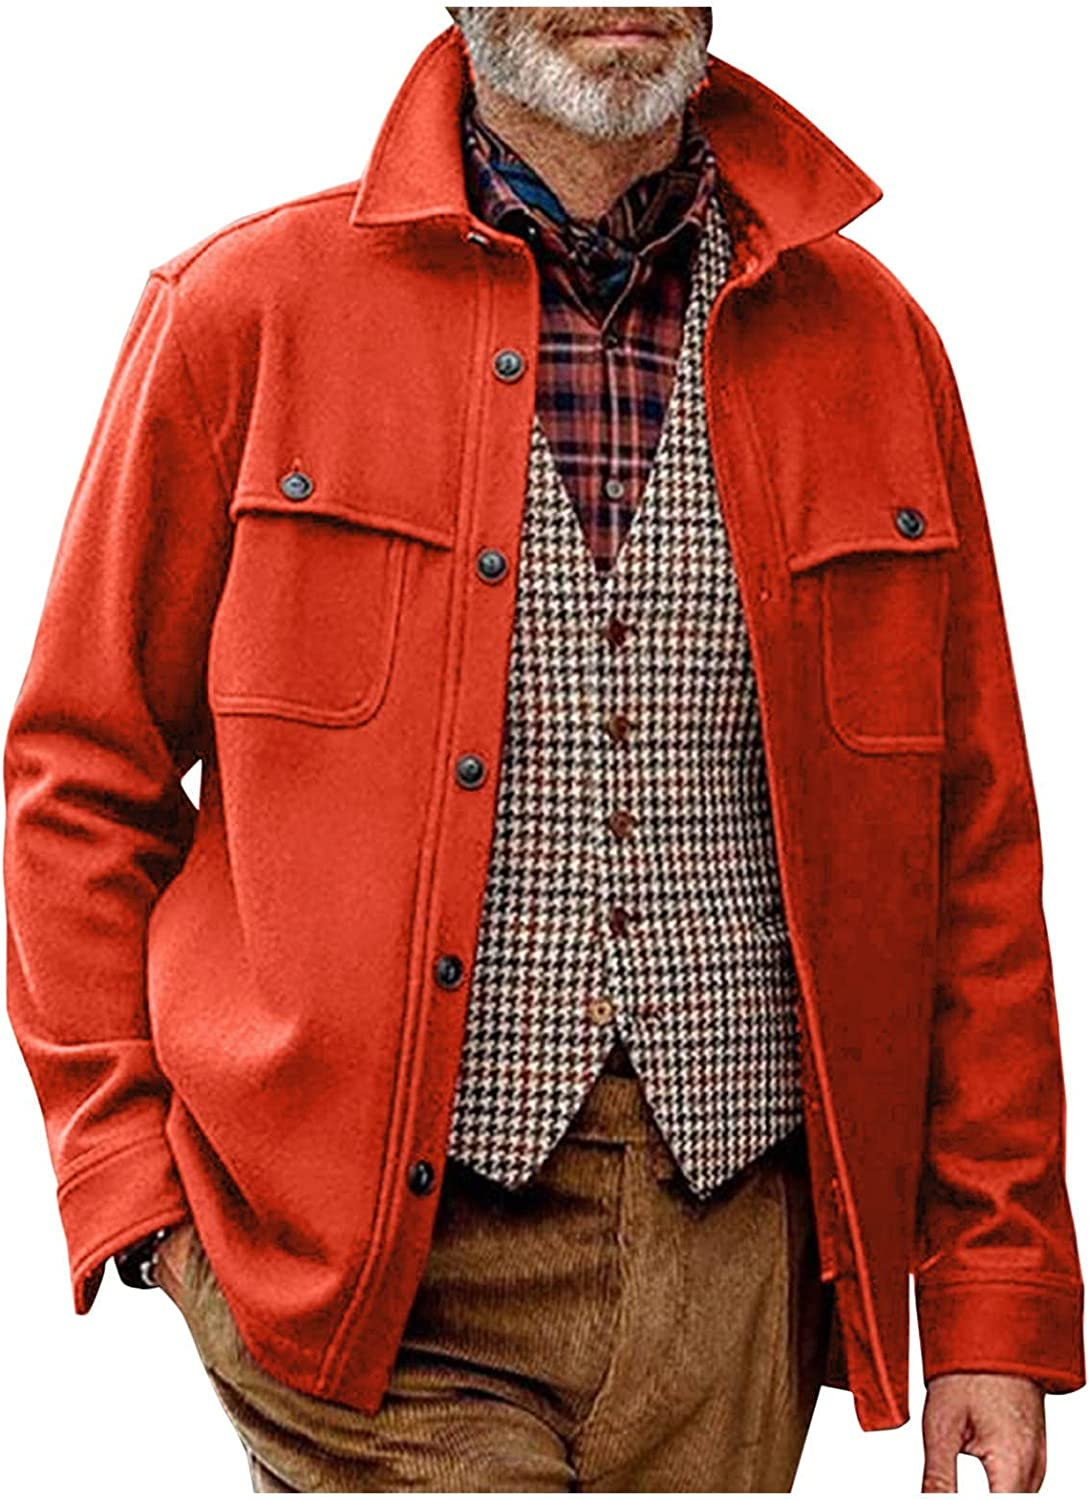 Mens Jackets Casual Big And Tall,Casual Cotton Jacket Button Down Woven Lightweight Shirt Jacket Slim Fit Warm Jacket